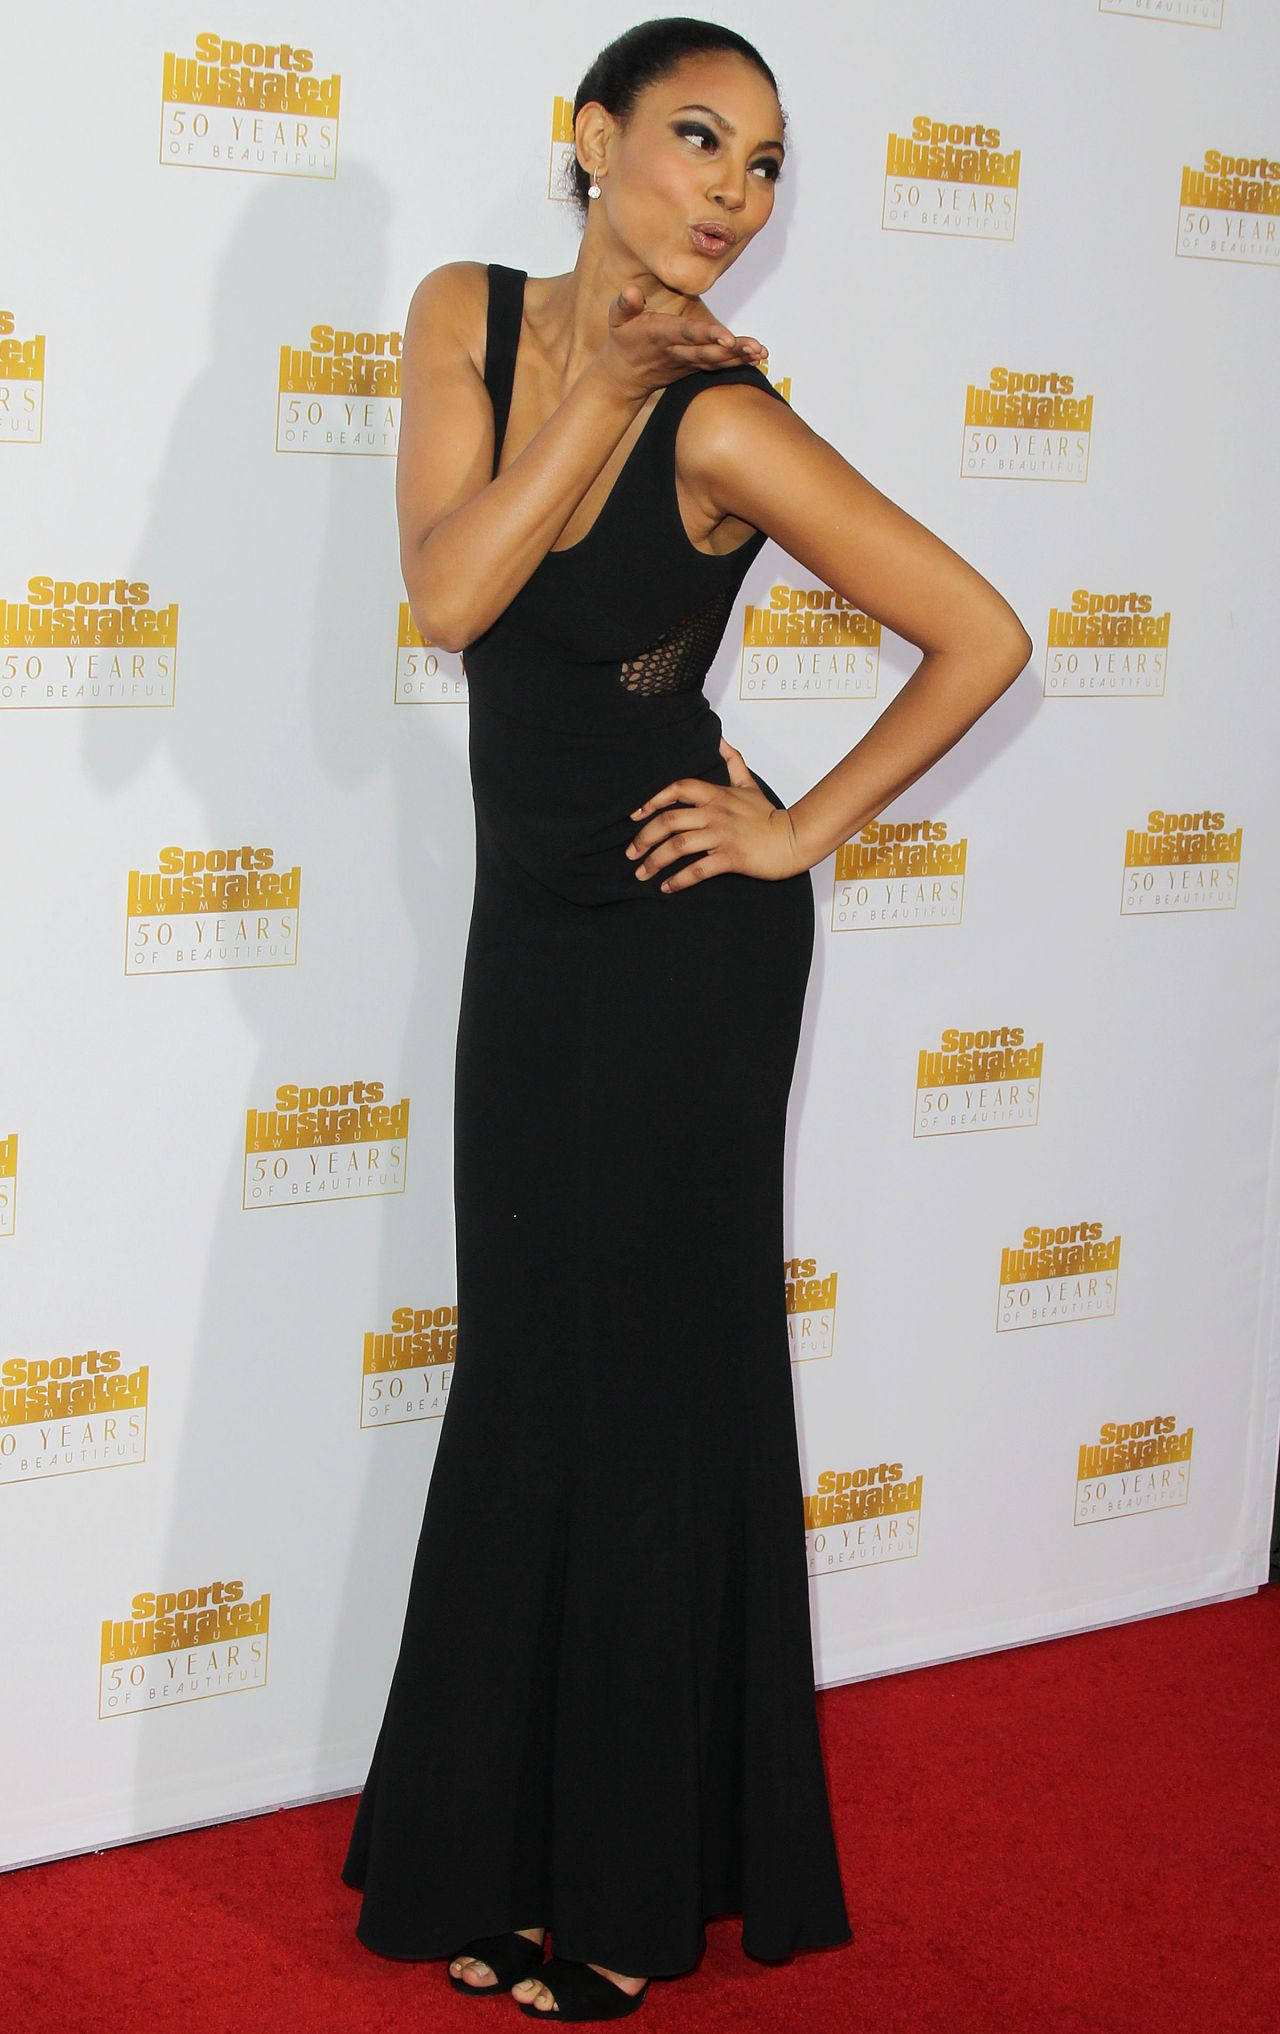 Ariel Meredith - 50th Anniversary of the SI Swimsuit Issue Celebration, January 2014